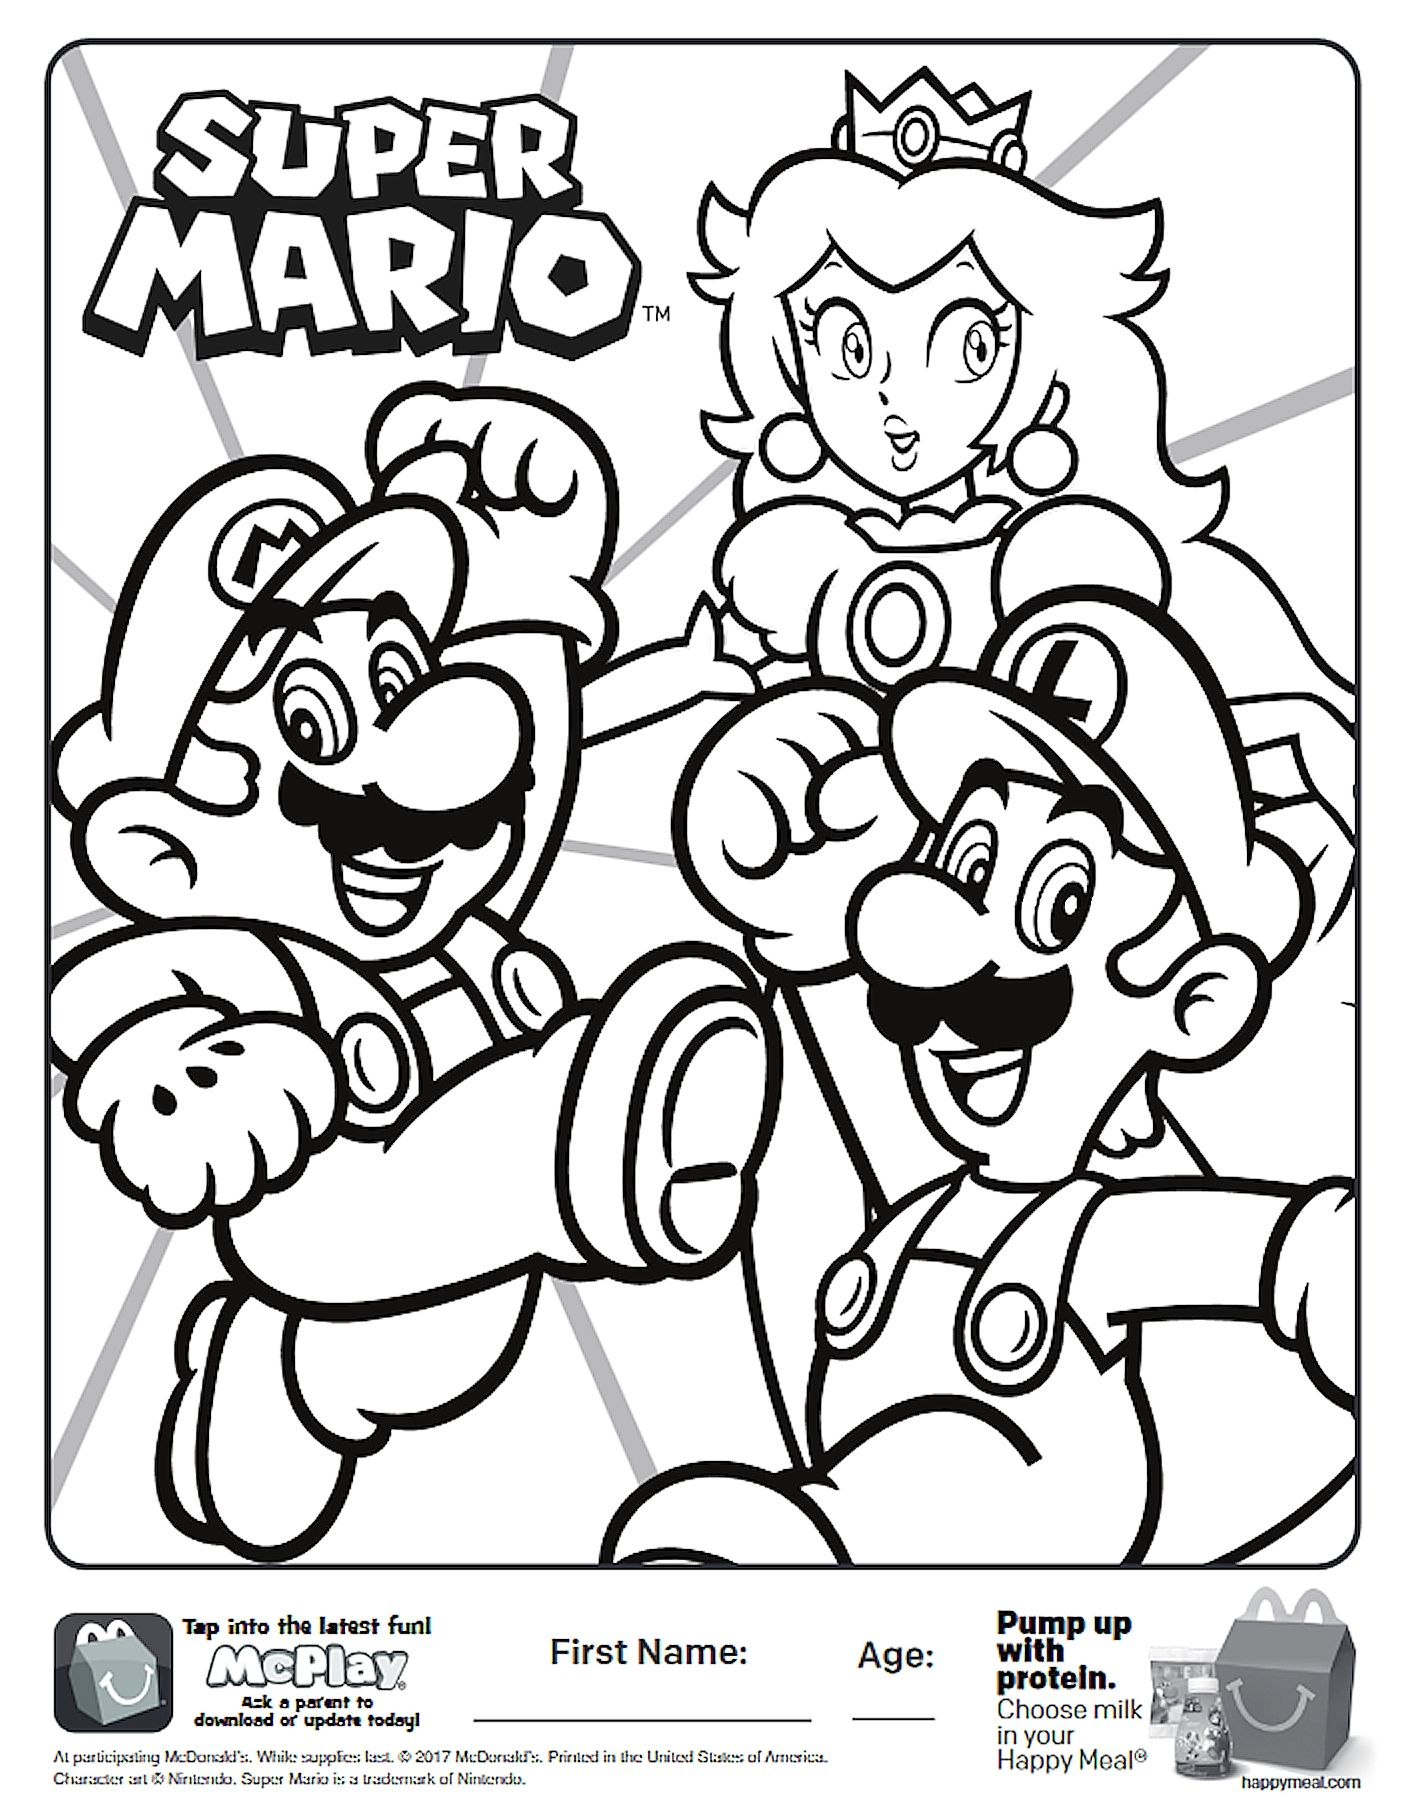 Here is the Happy Meal Super Mario Coloring Page! Click